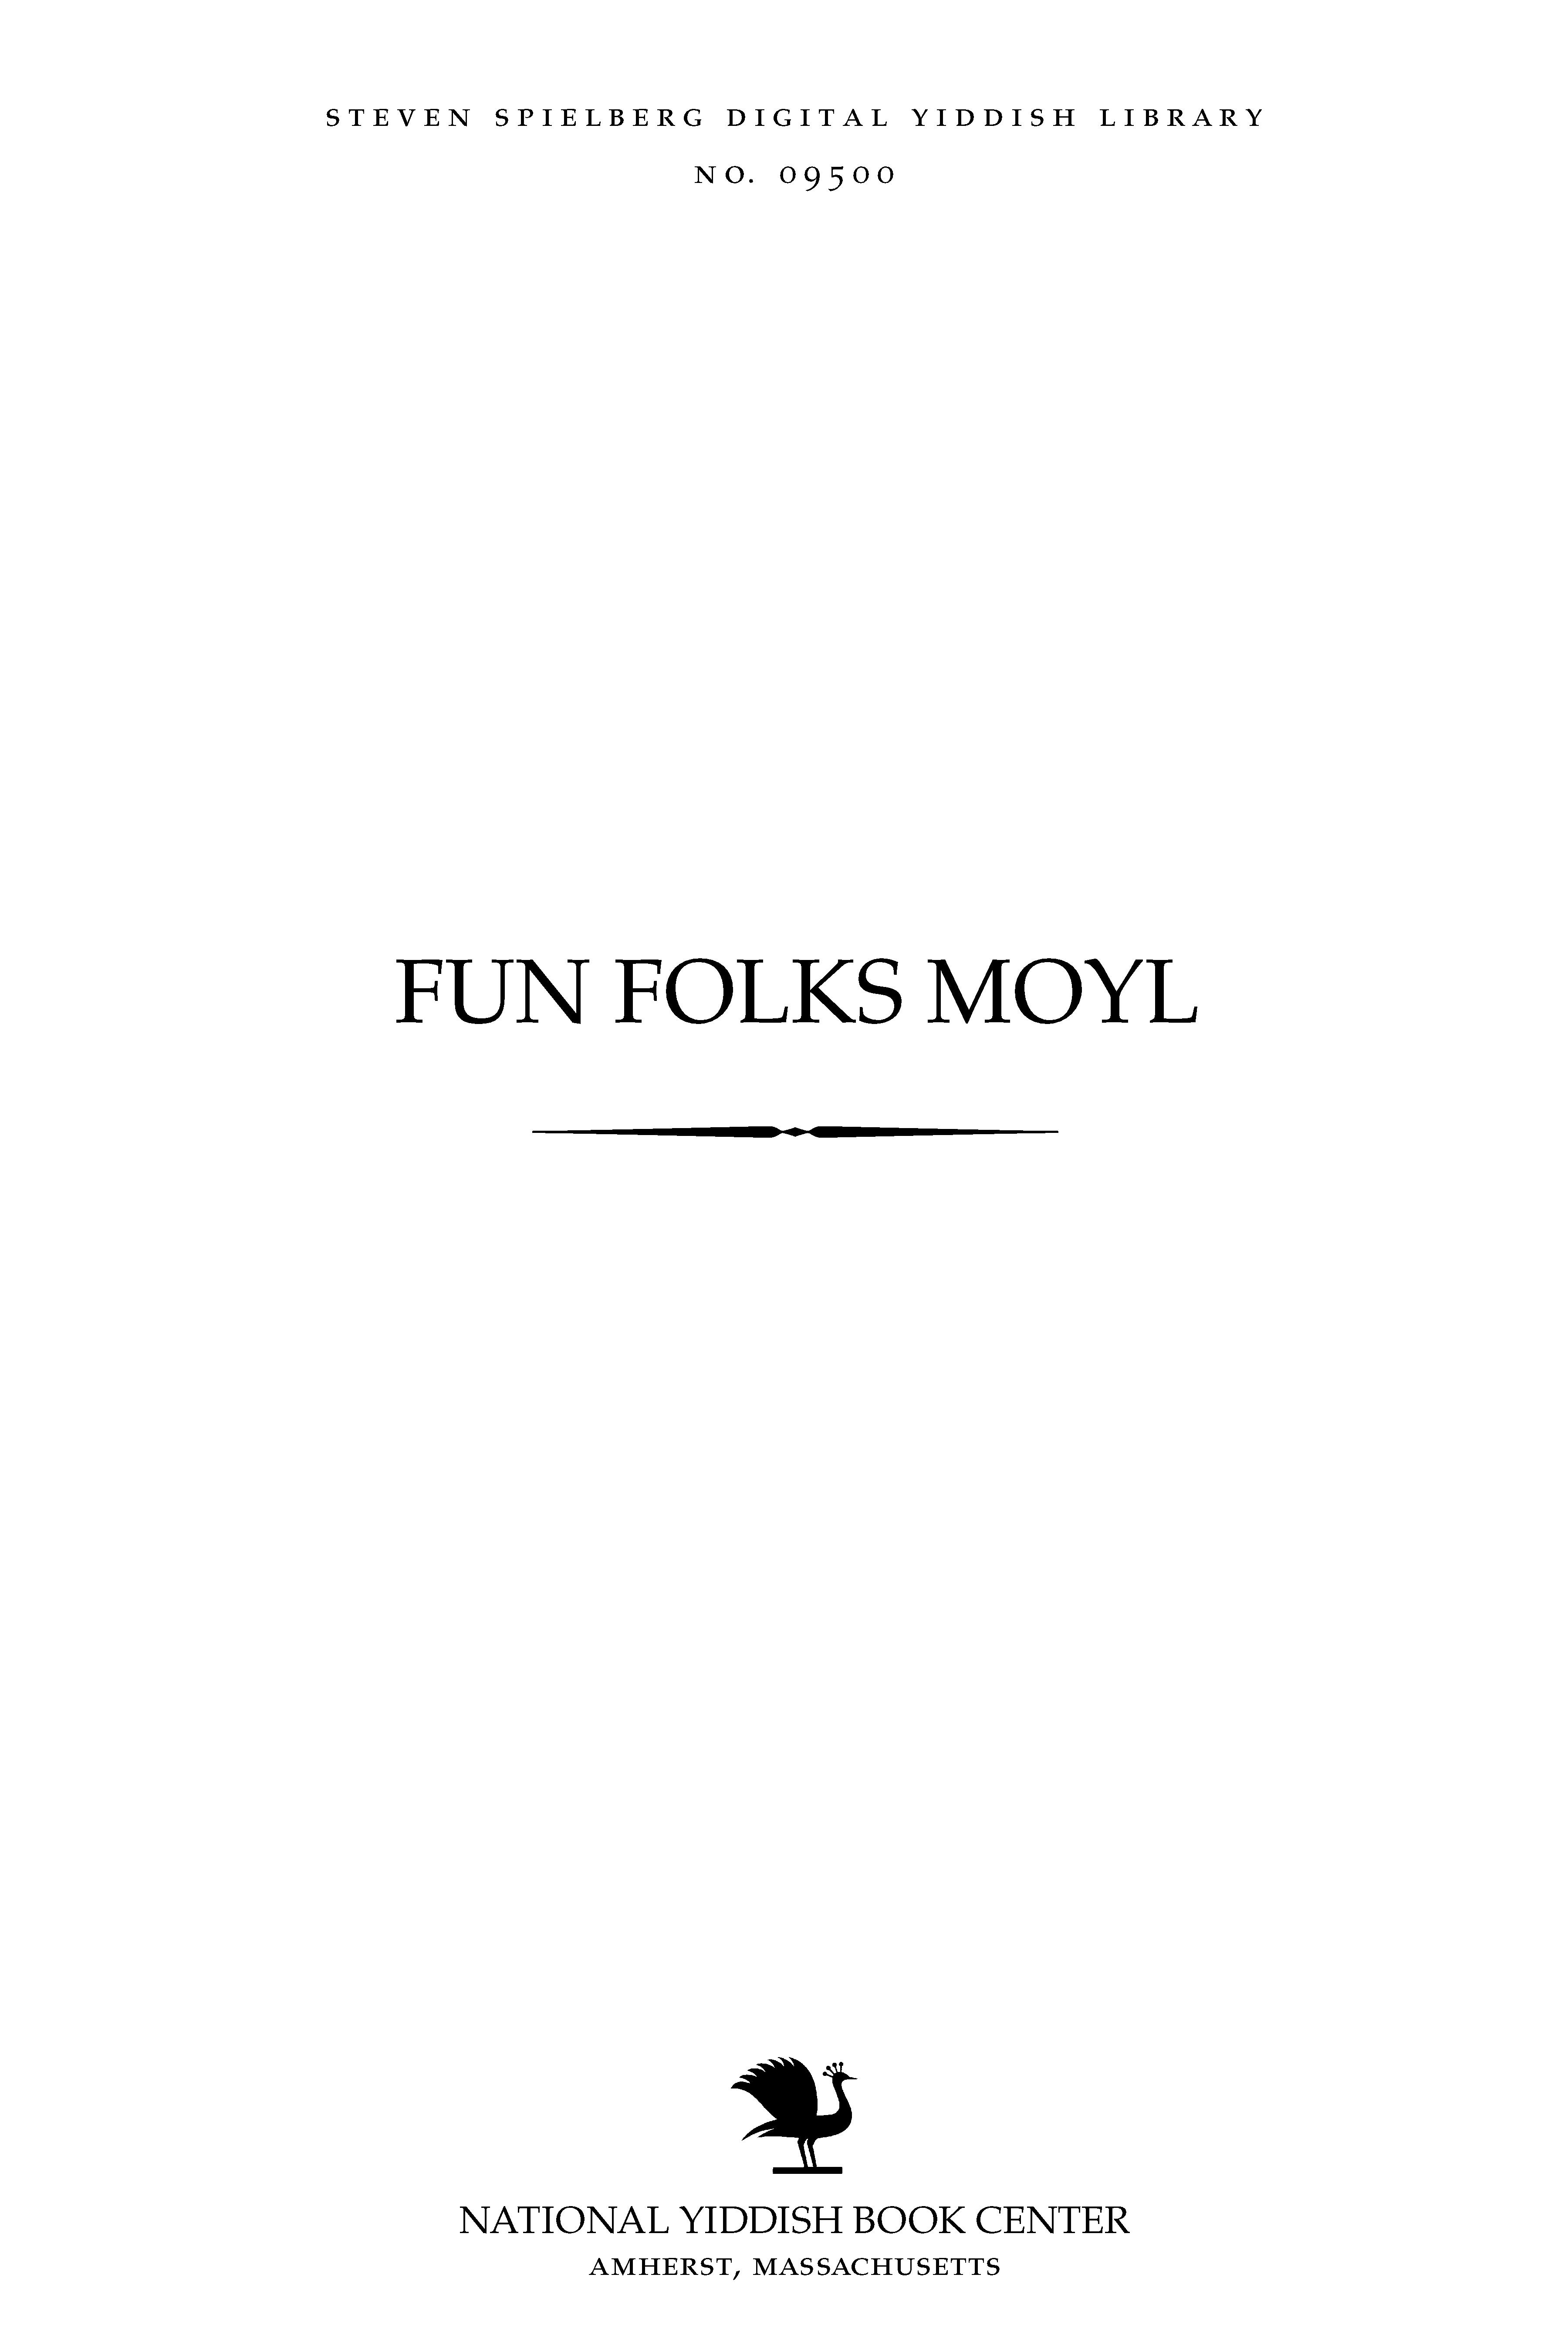 Fun folḳs moyl by gezamelṭ fun Shalom Kats = Yiddish proverbs / collected and published by Sholom Katz.